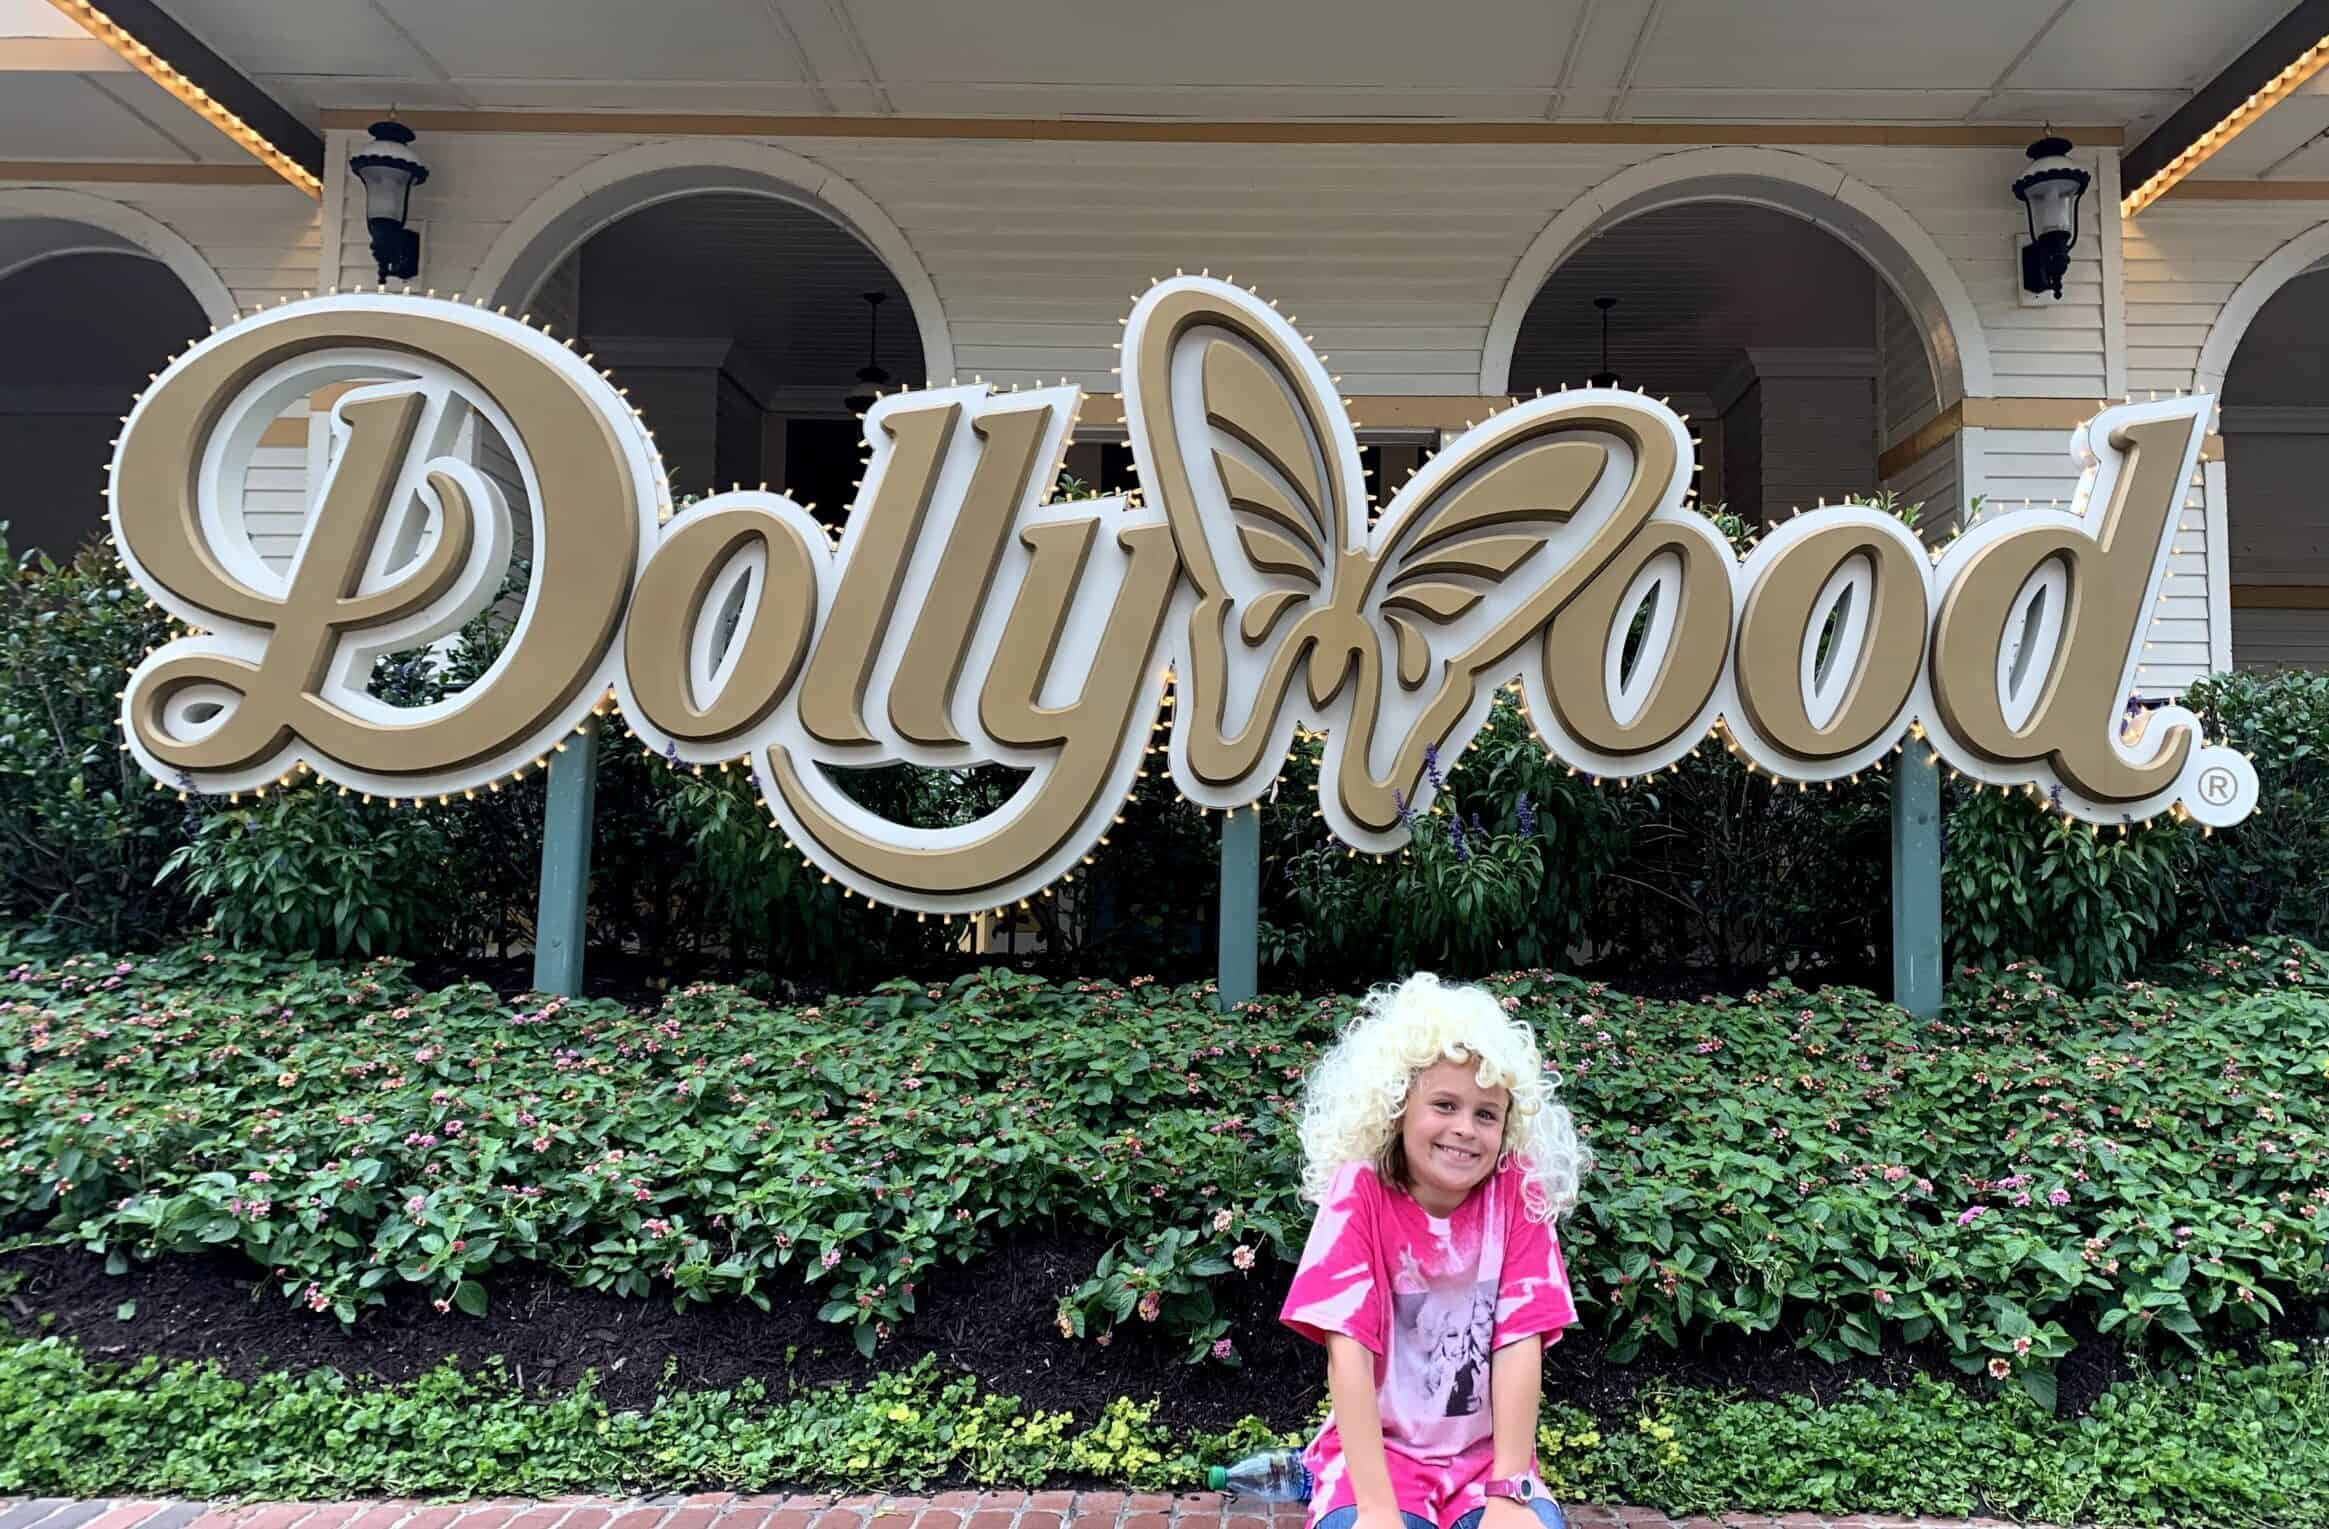 Road Trip stop in Dollywood